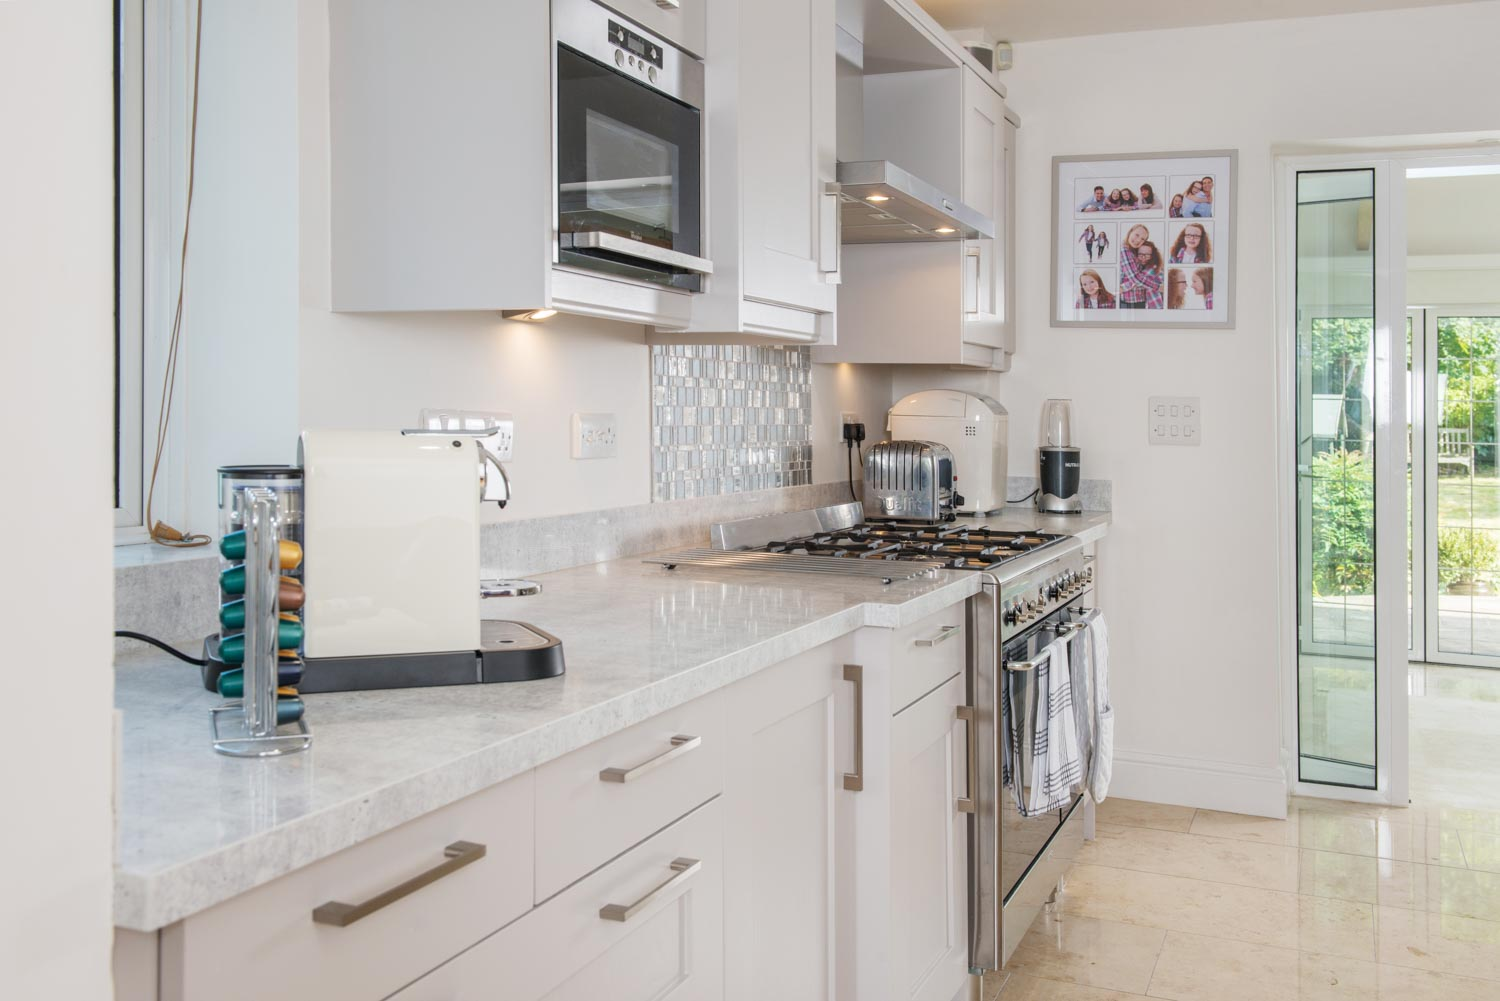 Cabinet Refacing Colors to Sell Your Home | Granite ...